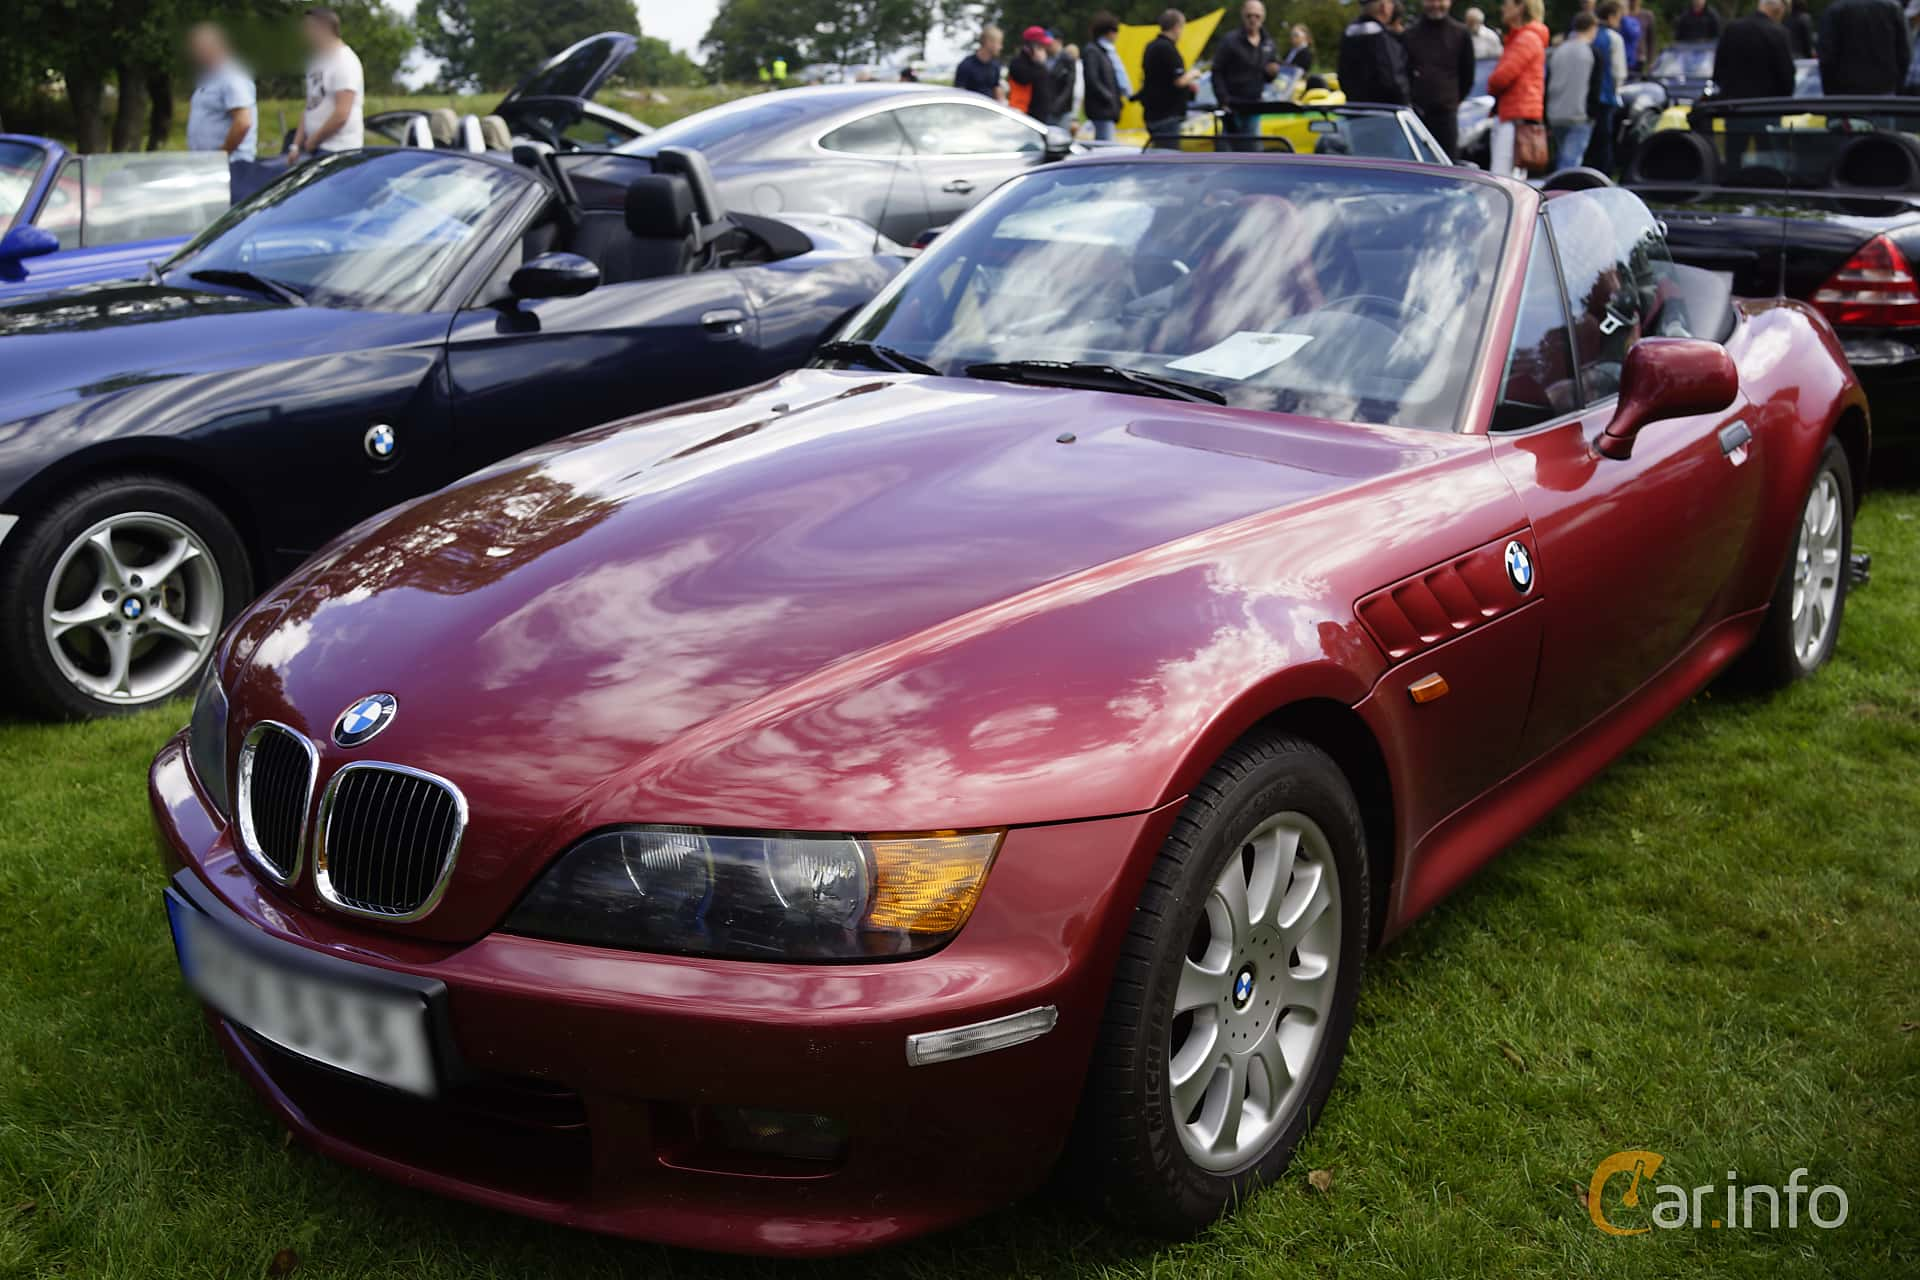 BMW Z3 3.0i Roadster Manual, 231hp, 2001 at Sportvagnsträffen 2015